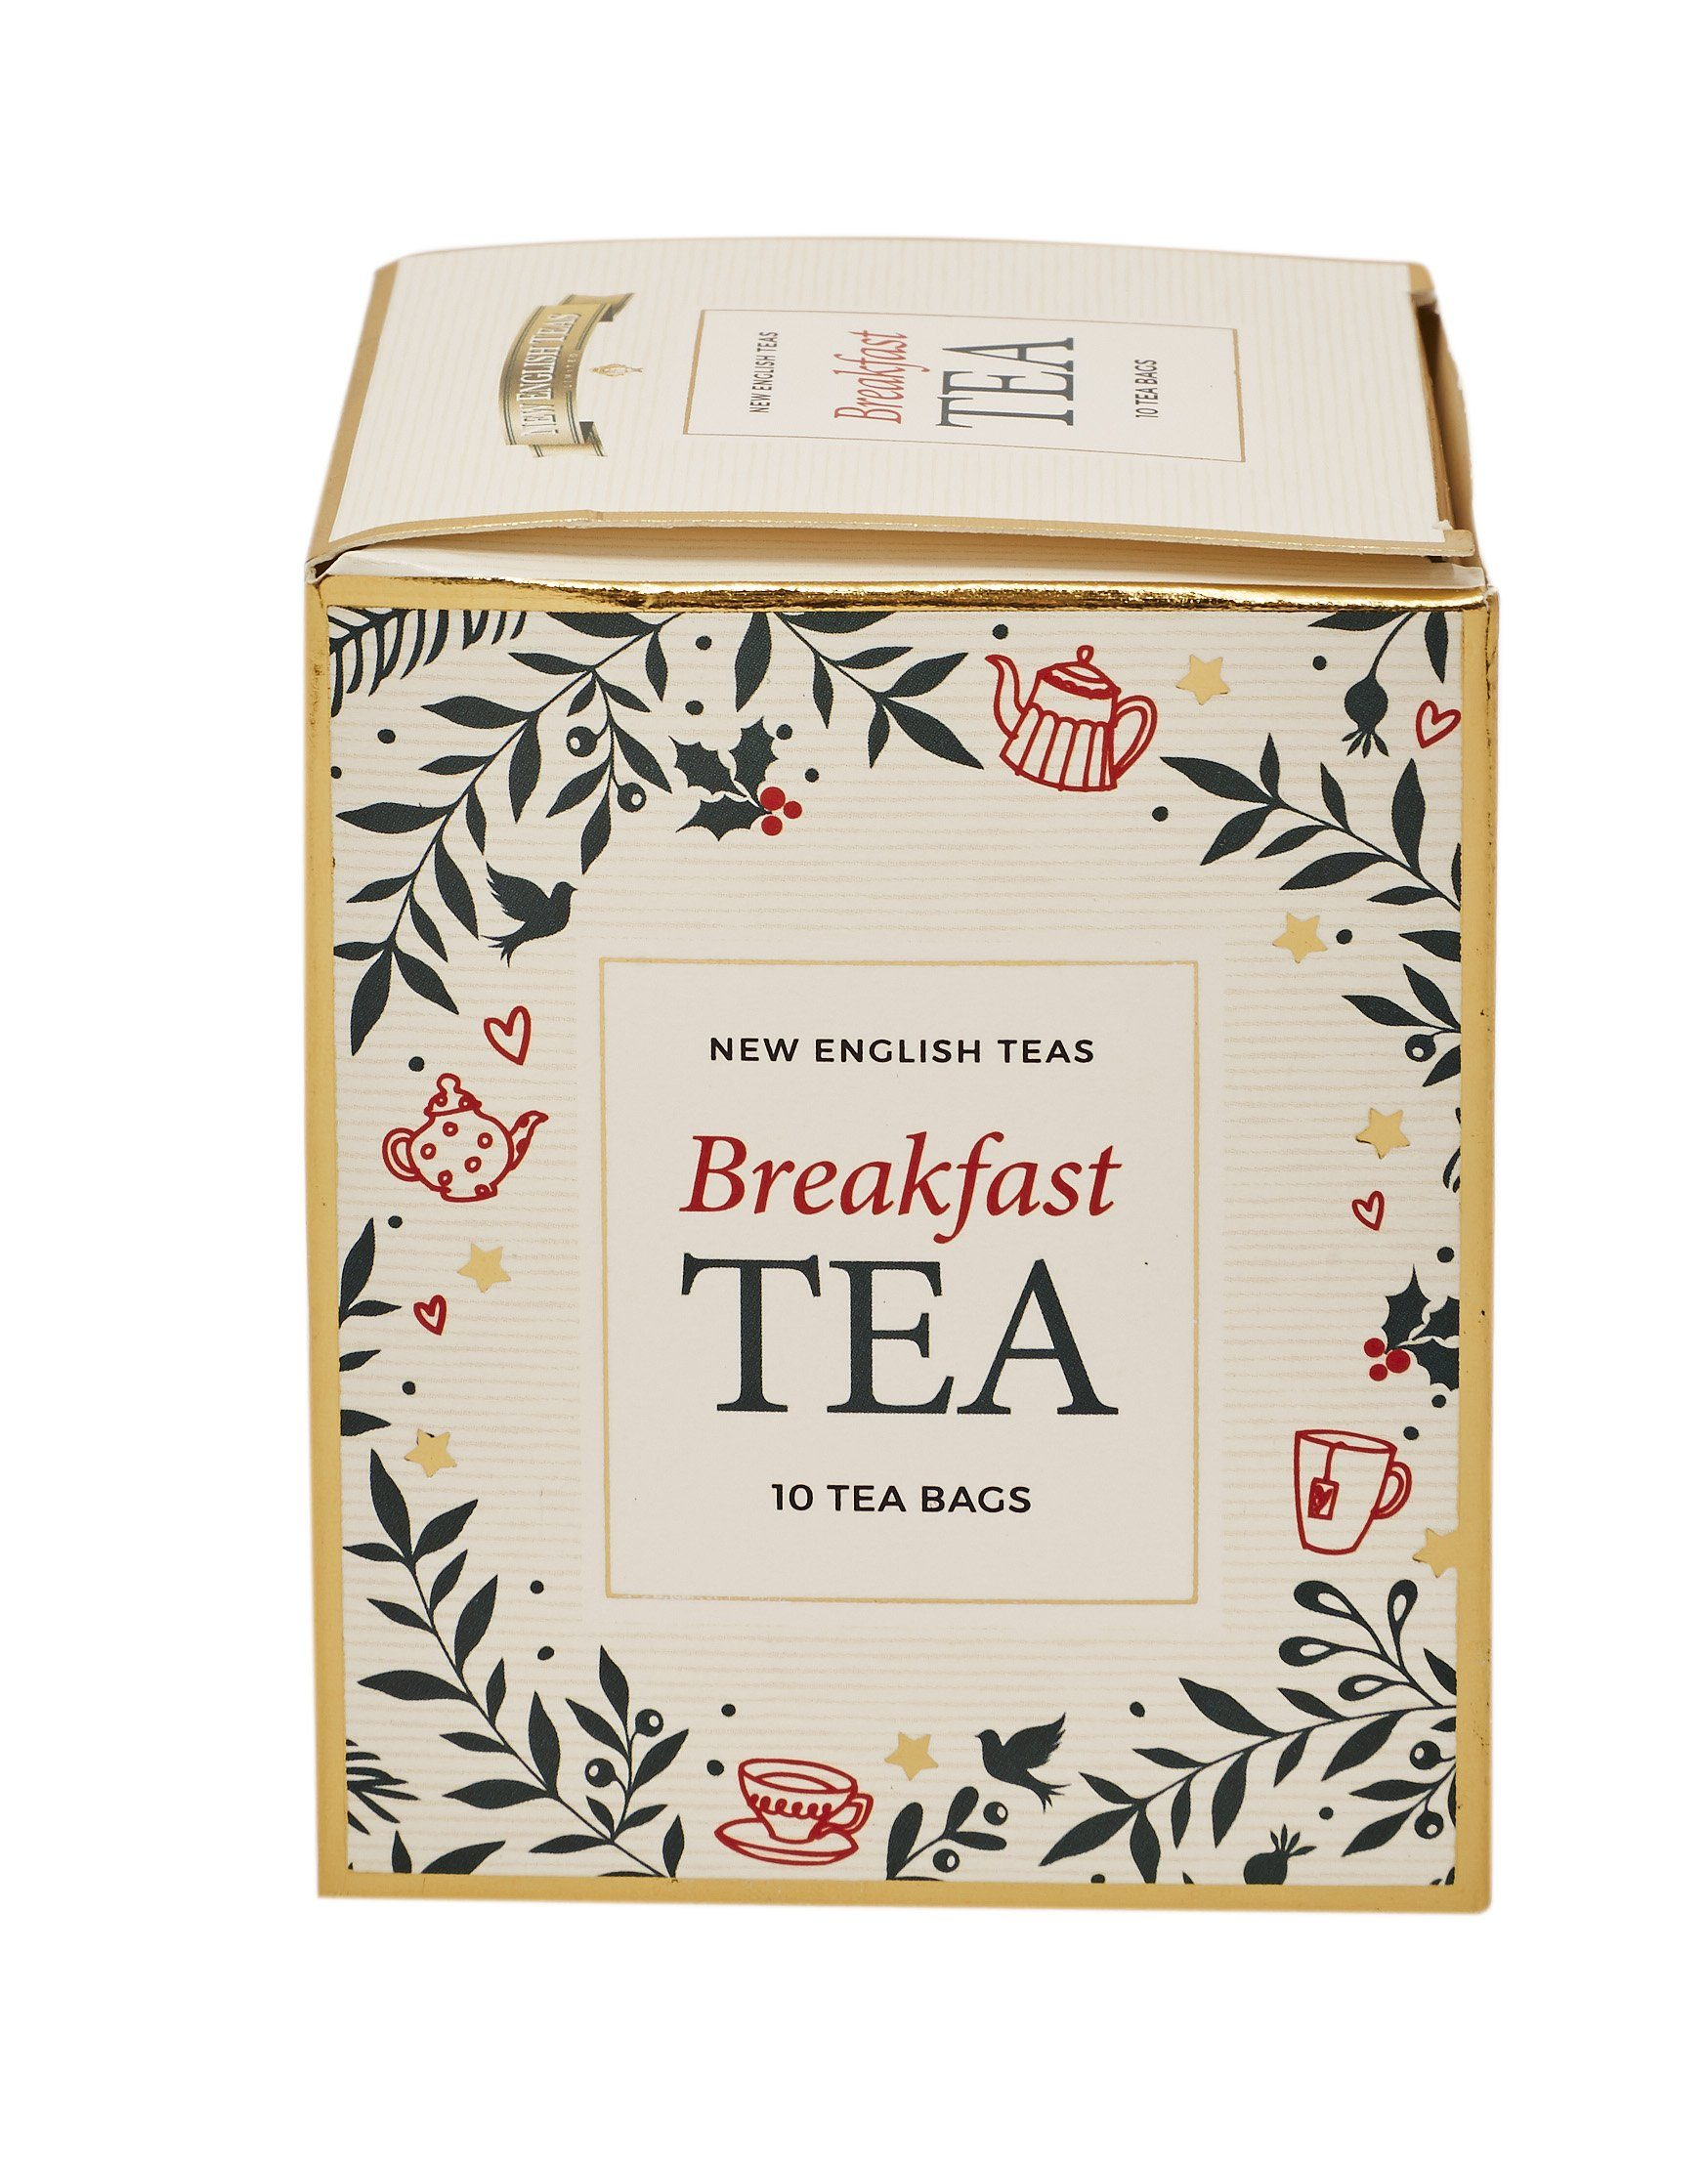 White Christmas Teabag Box with 10 Afternoon Tea Teabags Black Tea New English Teas